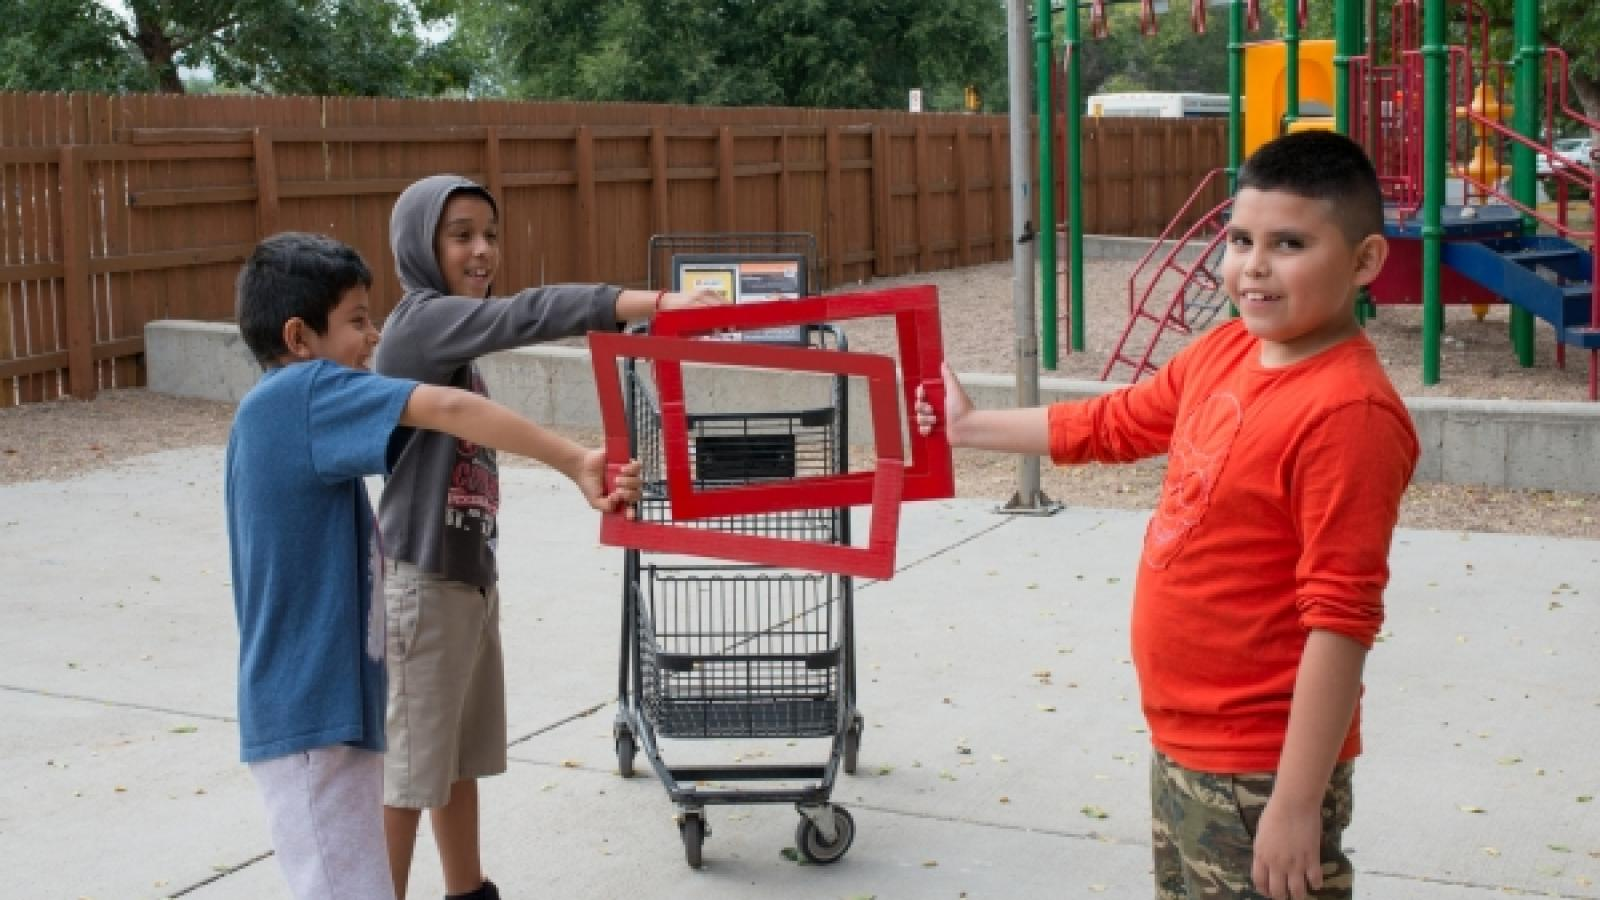 Three children hold red frames around an abandoned cart in a playground, signifying they don't like to see carts in their playgrounds.